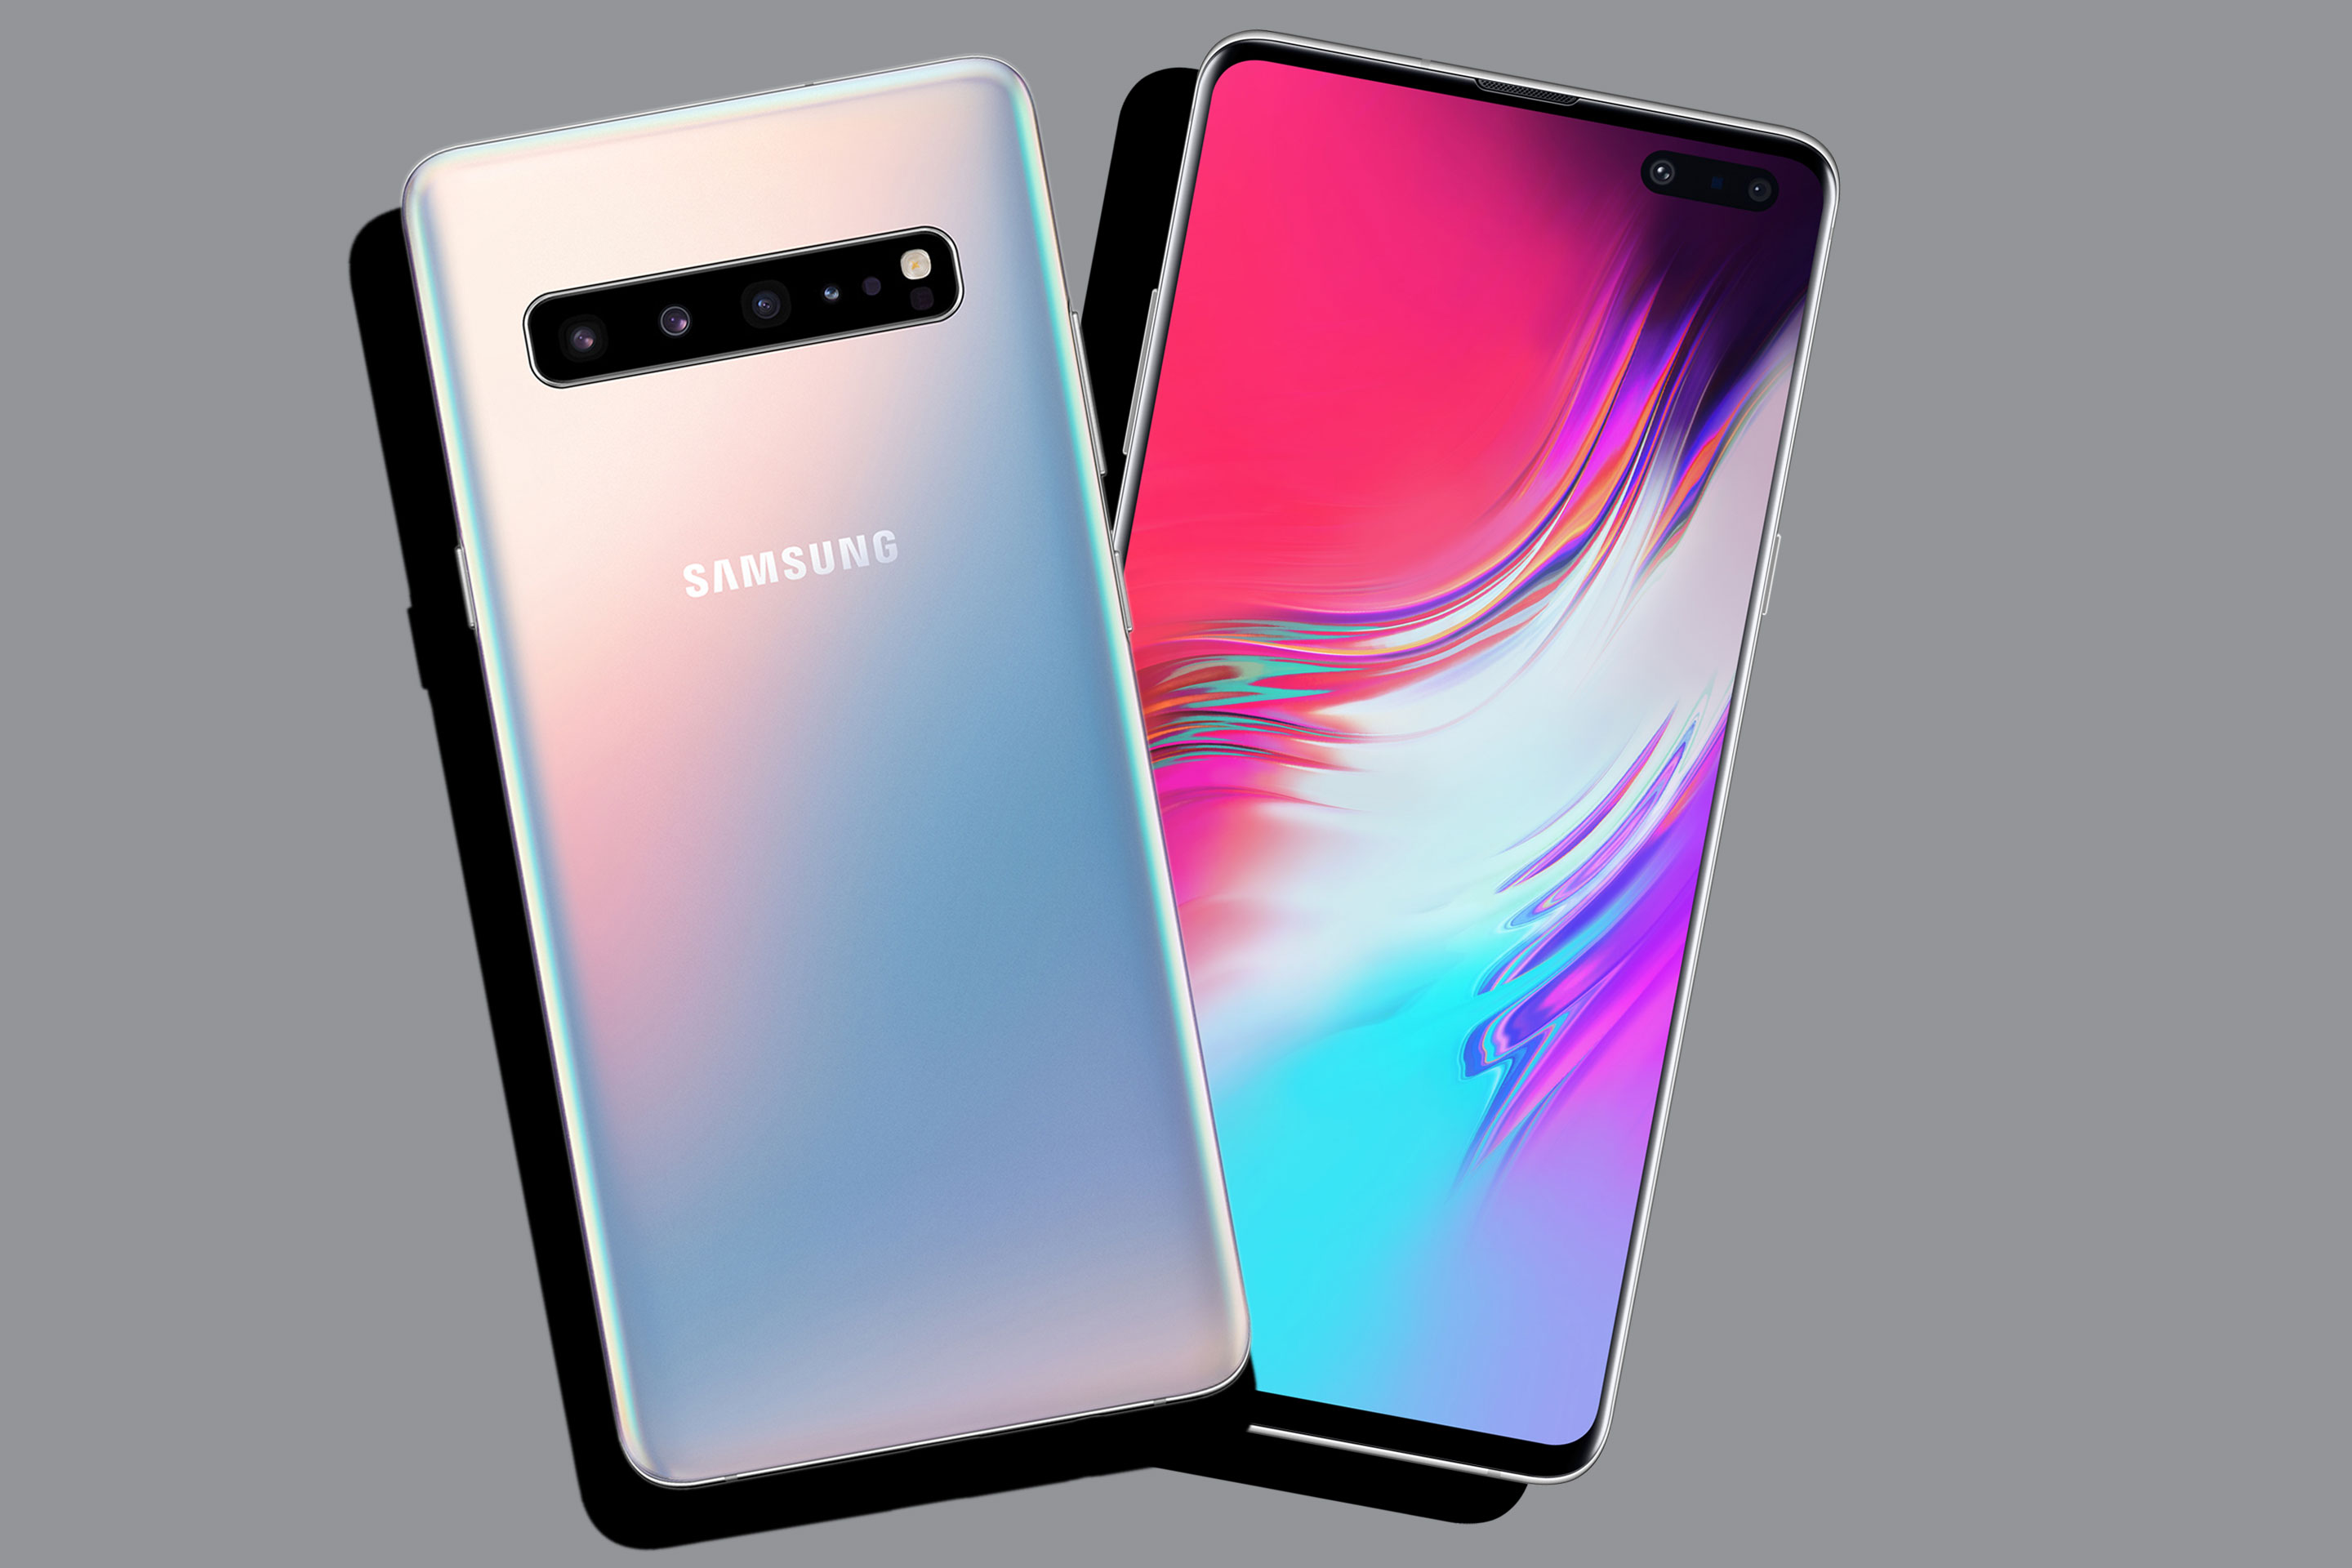 Samsung's Galaxy S10 – 5G phones